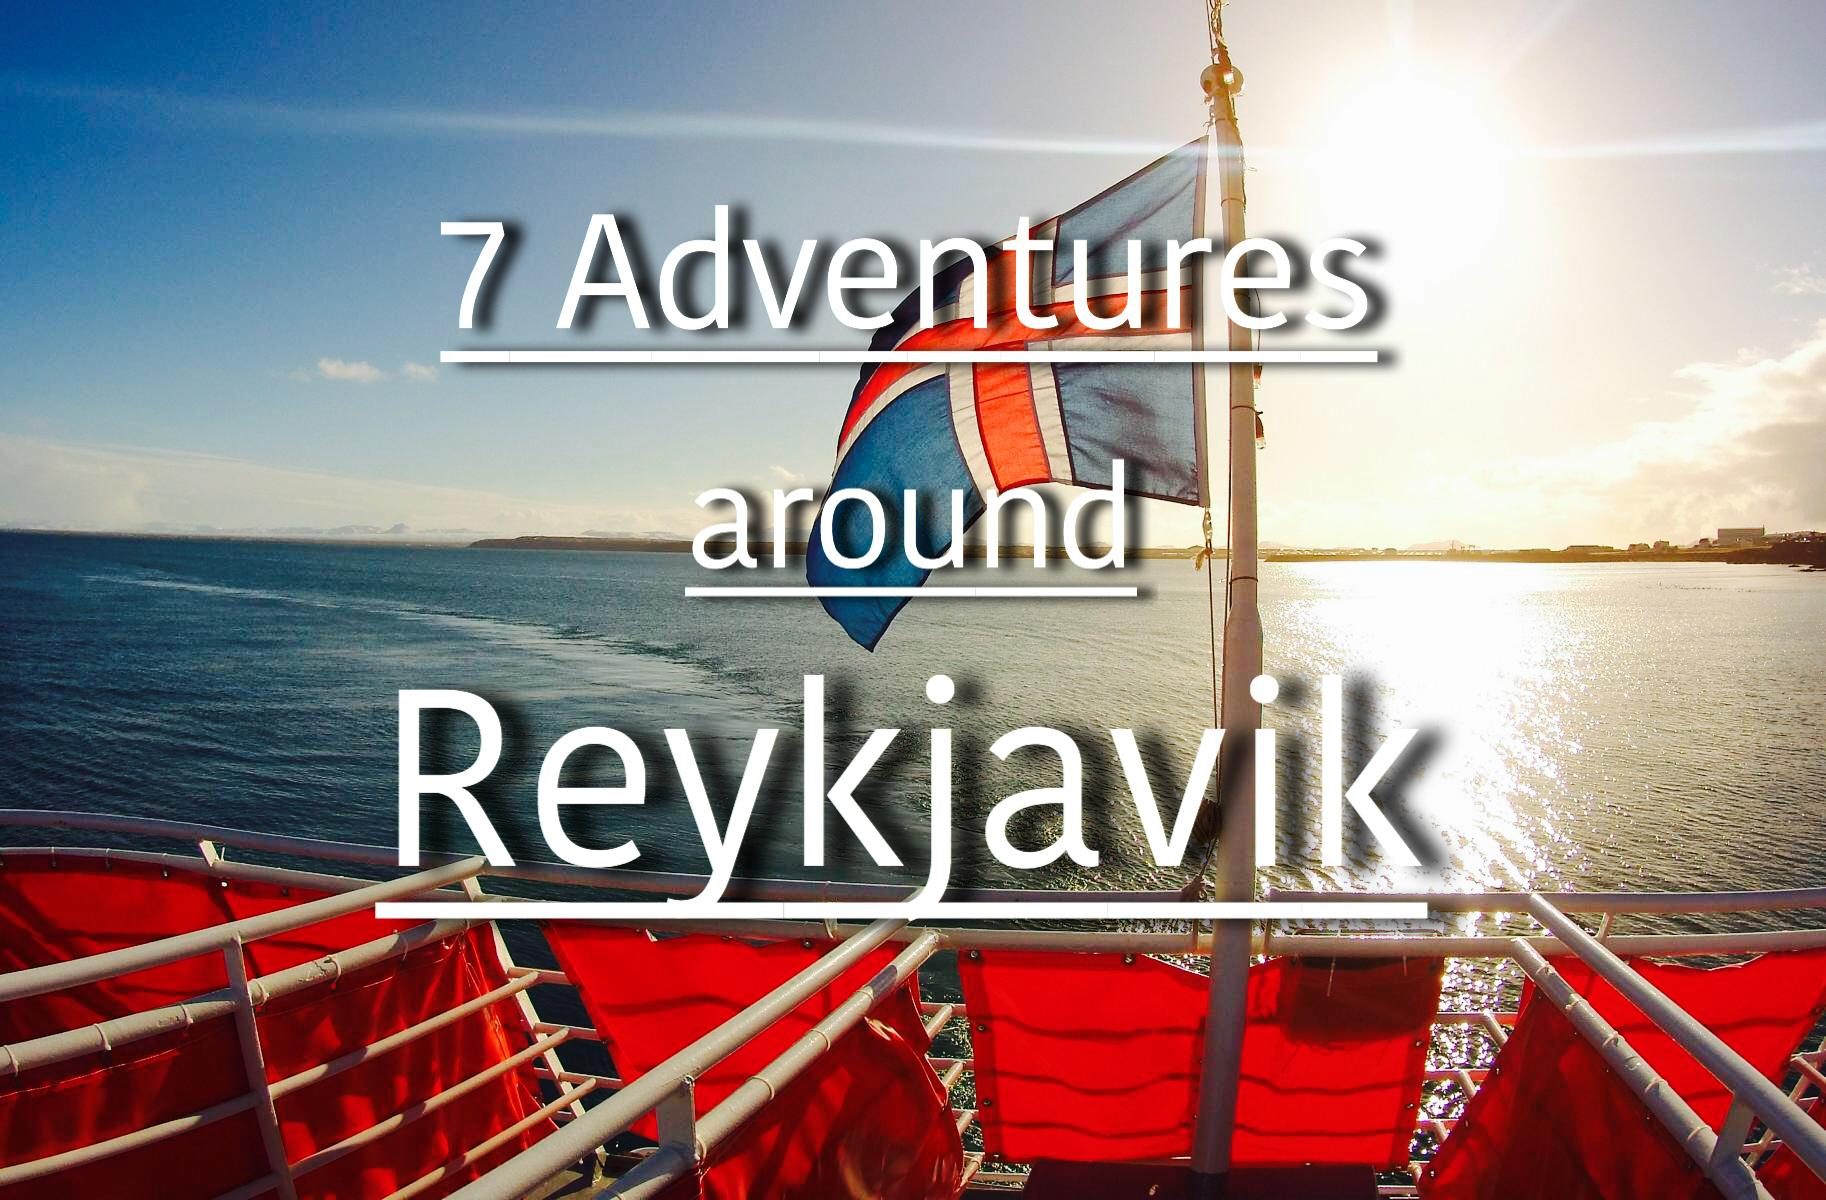 Best things to do reykjavik iceland